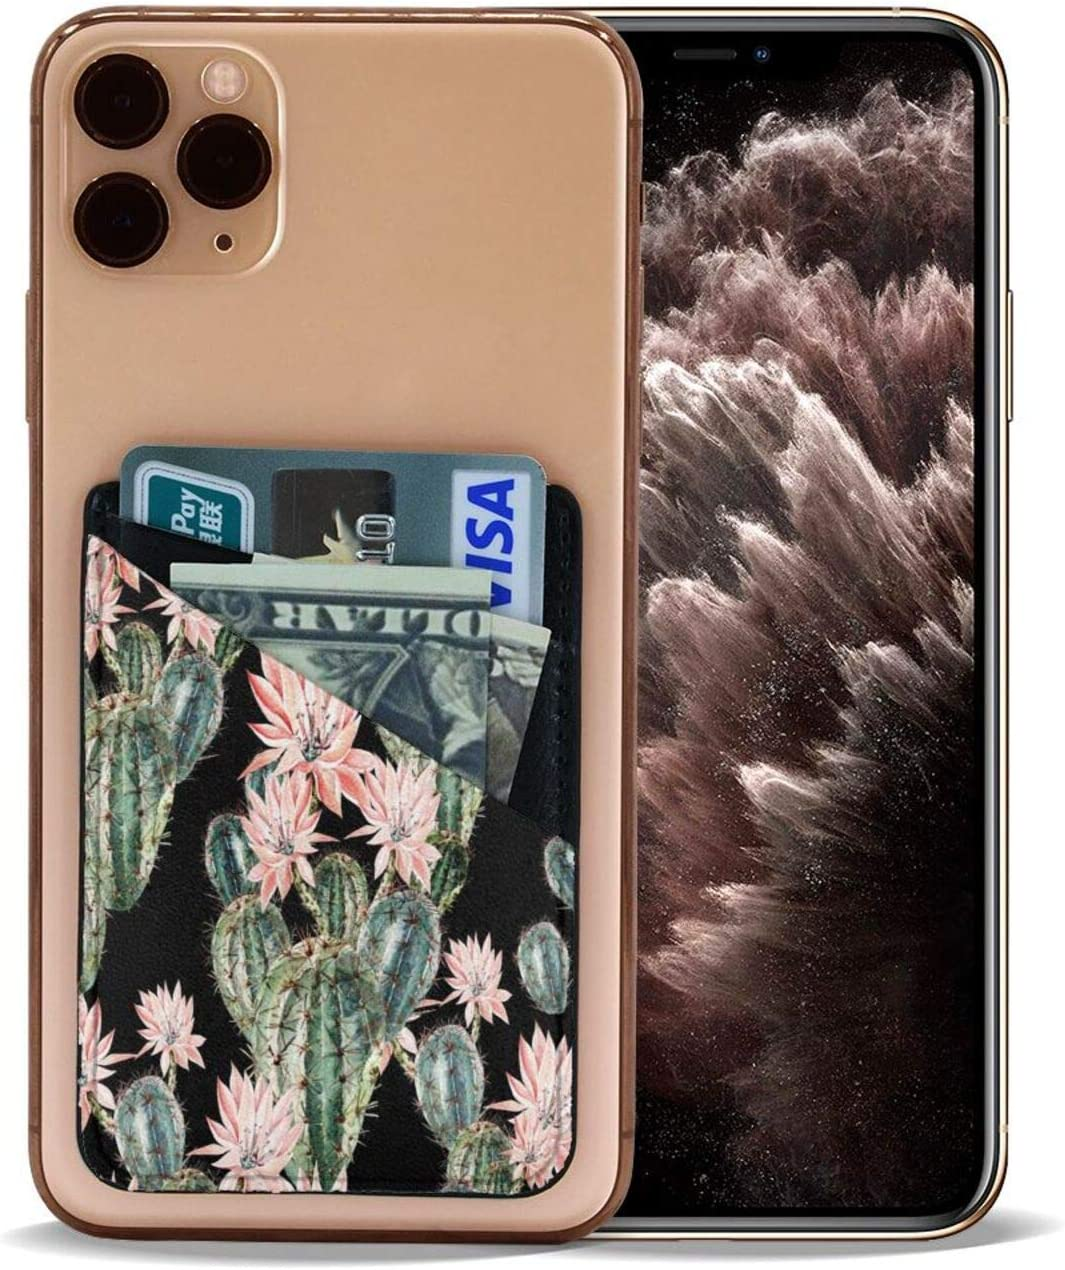 Vintage Cactus Phone Card Holder, Stick-on ID Credit Card Wallet Phone Case Pouch Sleeve Pocket for iPhone, Android and All Smartphones